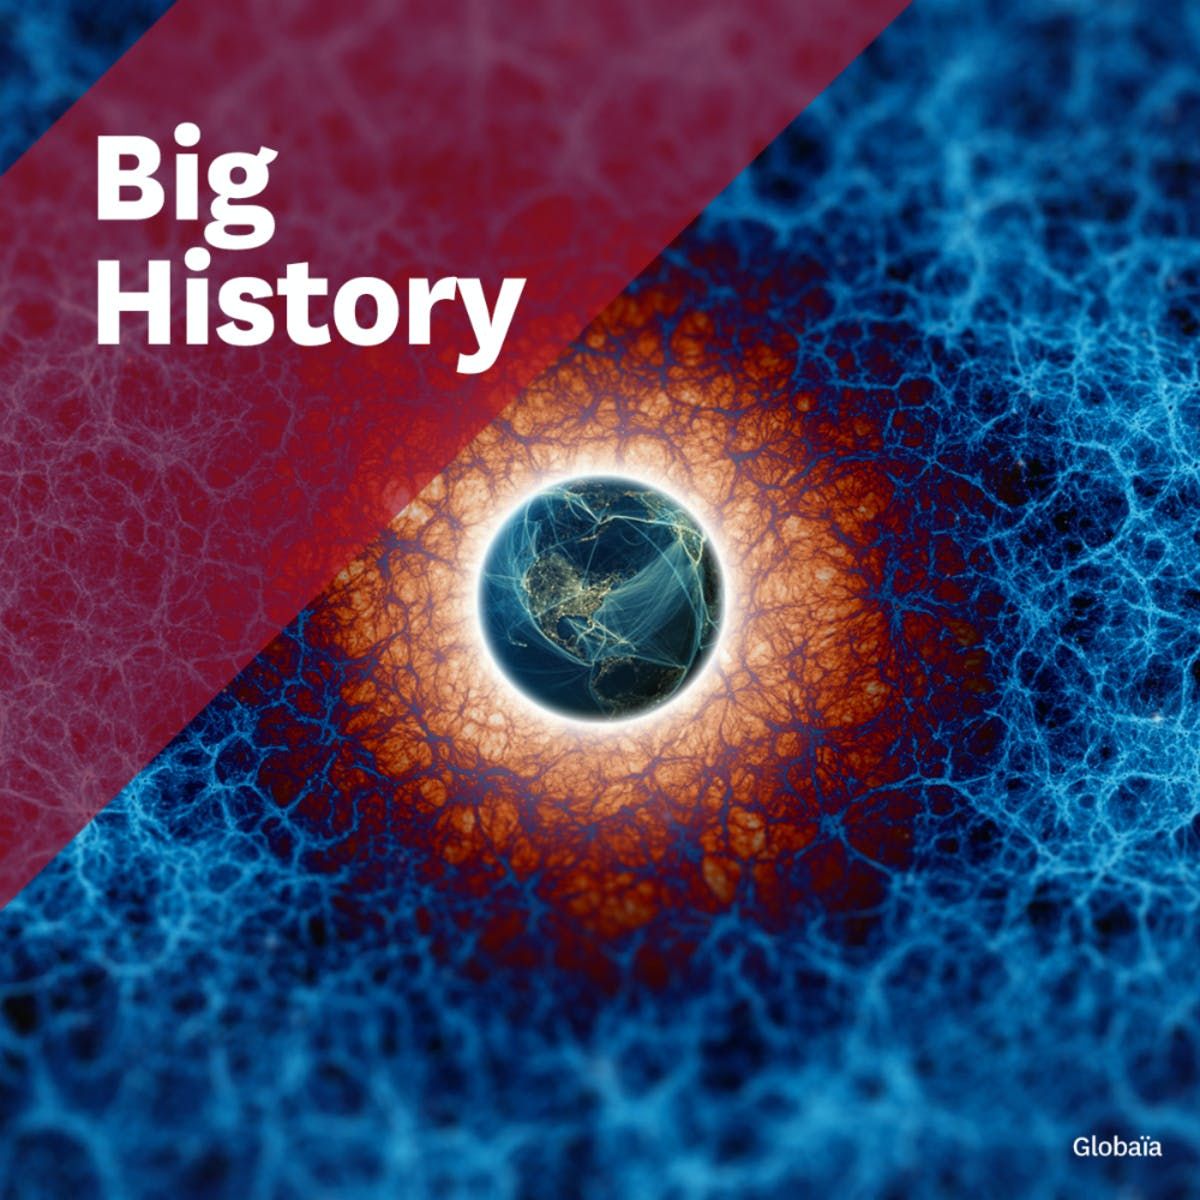 Big History: Connecting Knowledge